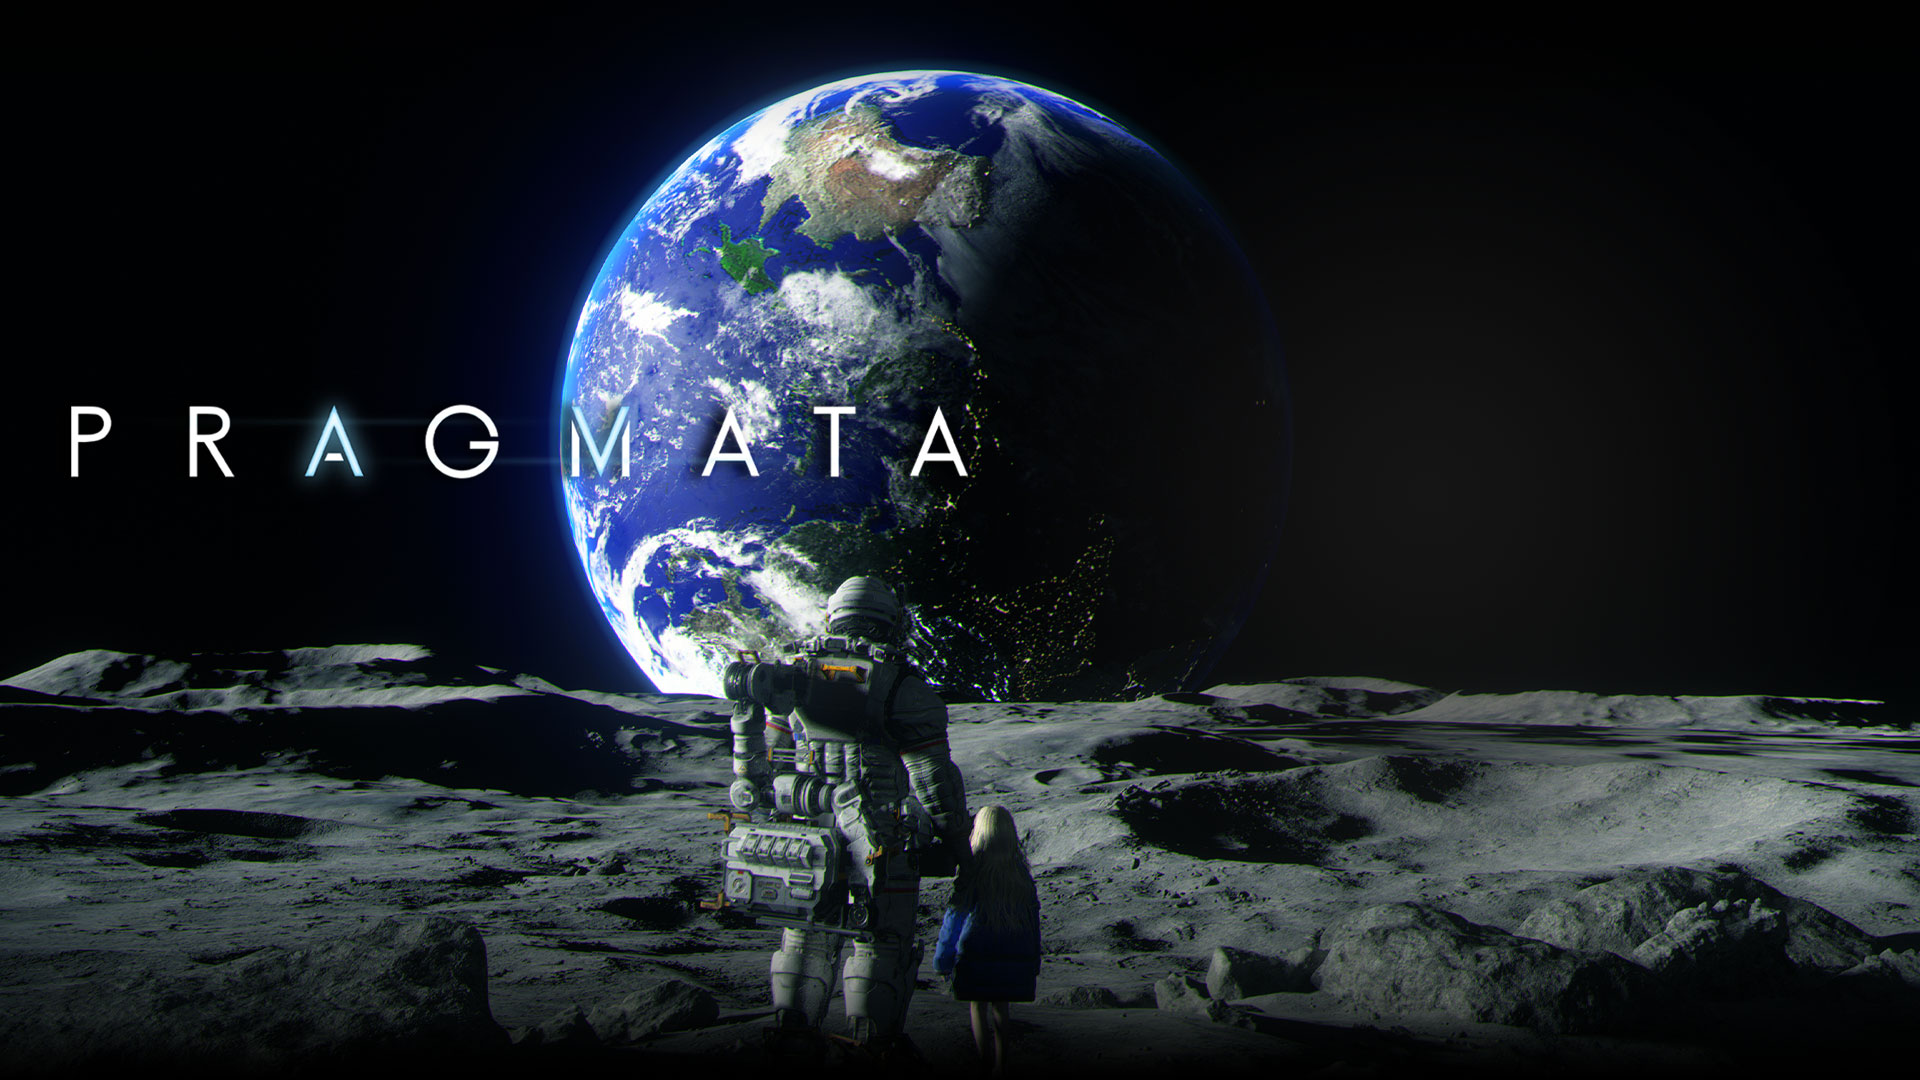 Pragmata, an astronaut and a young girl look at the Earth while standing together on the moon